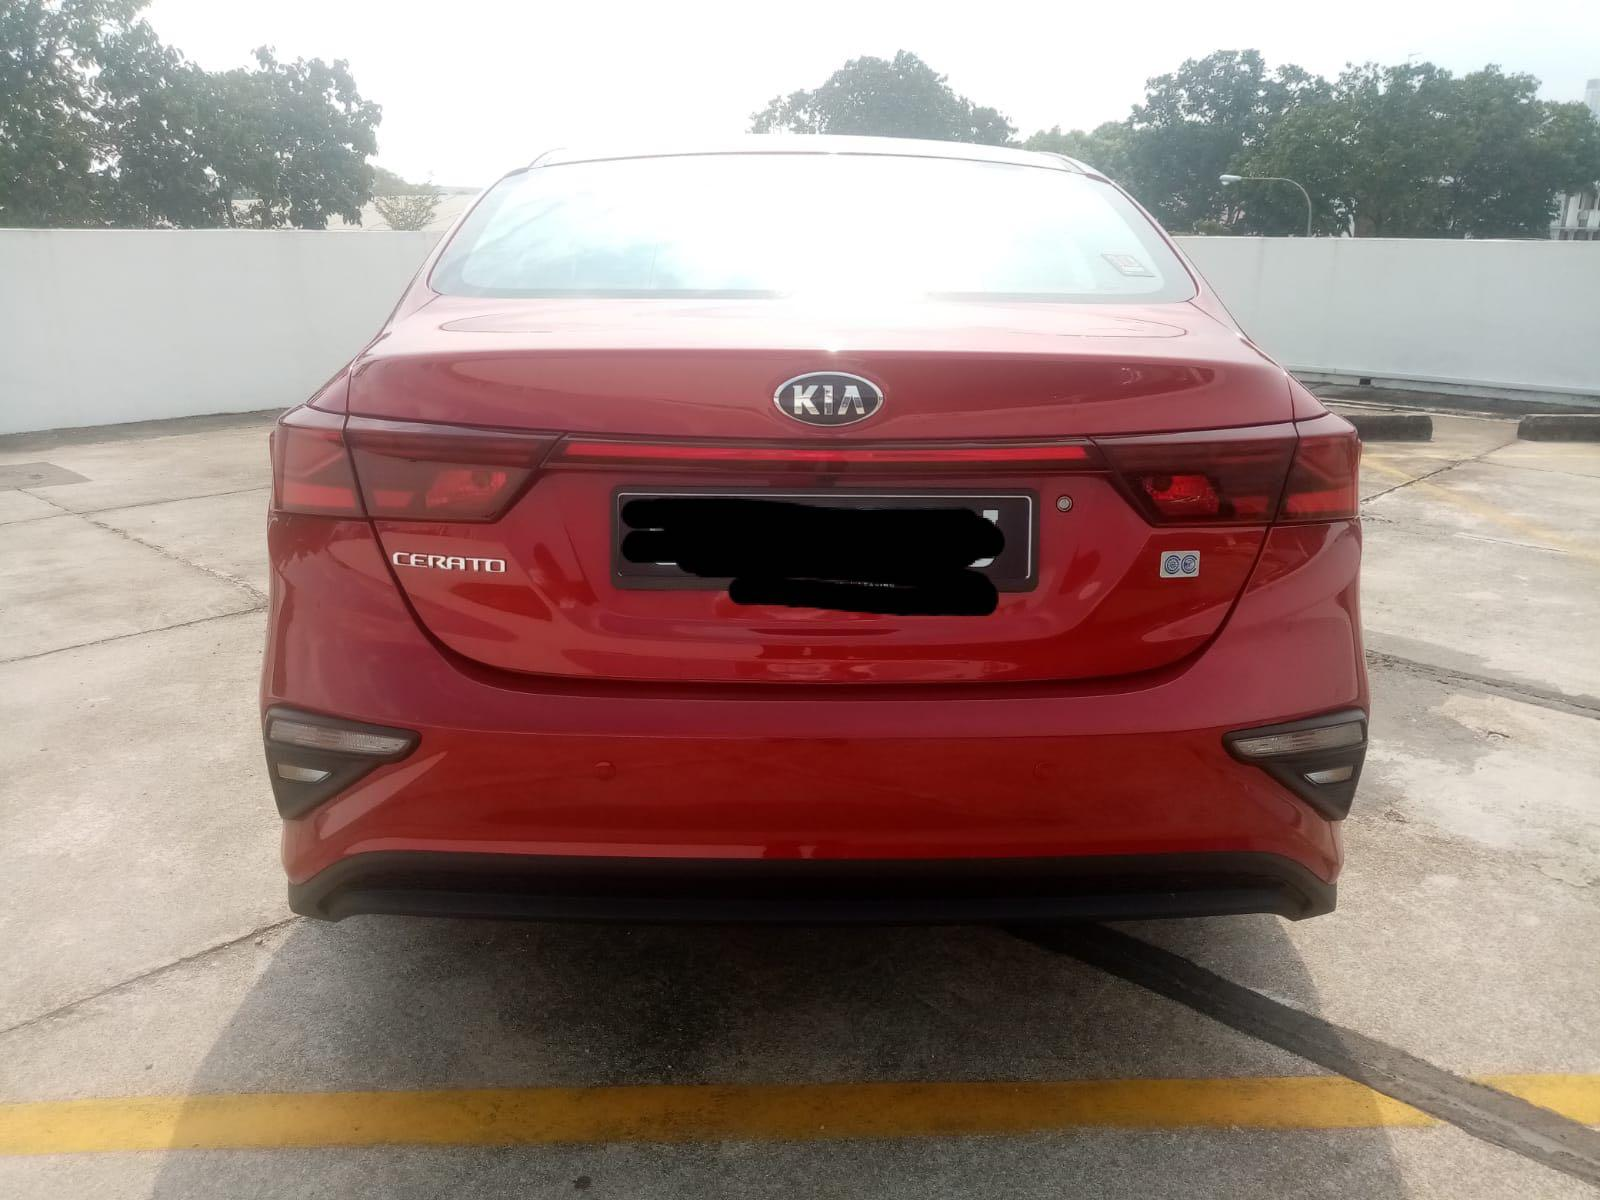 CHEAP RENTAL!! This week promo!!! Brand new Kia Cerato for Rent! price before gojek rebate!!